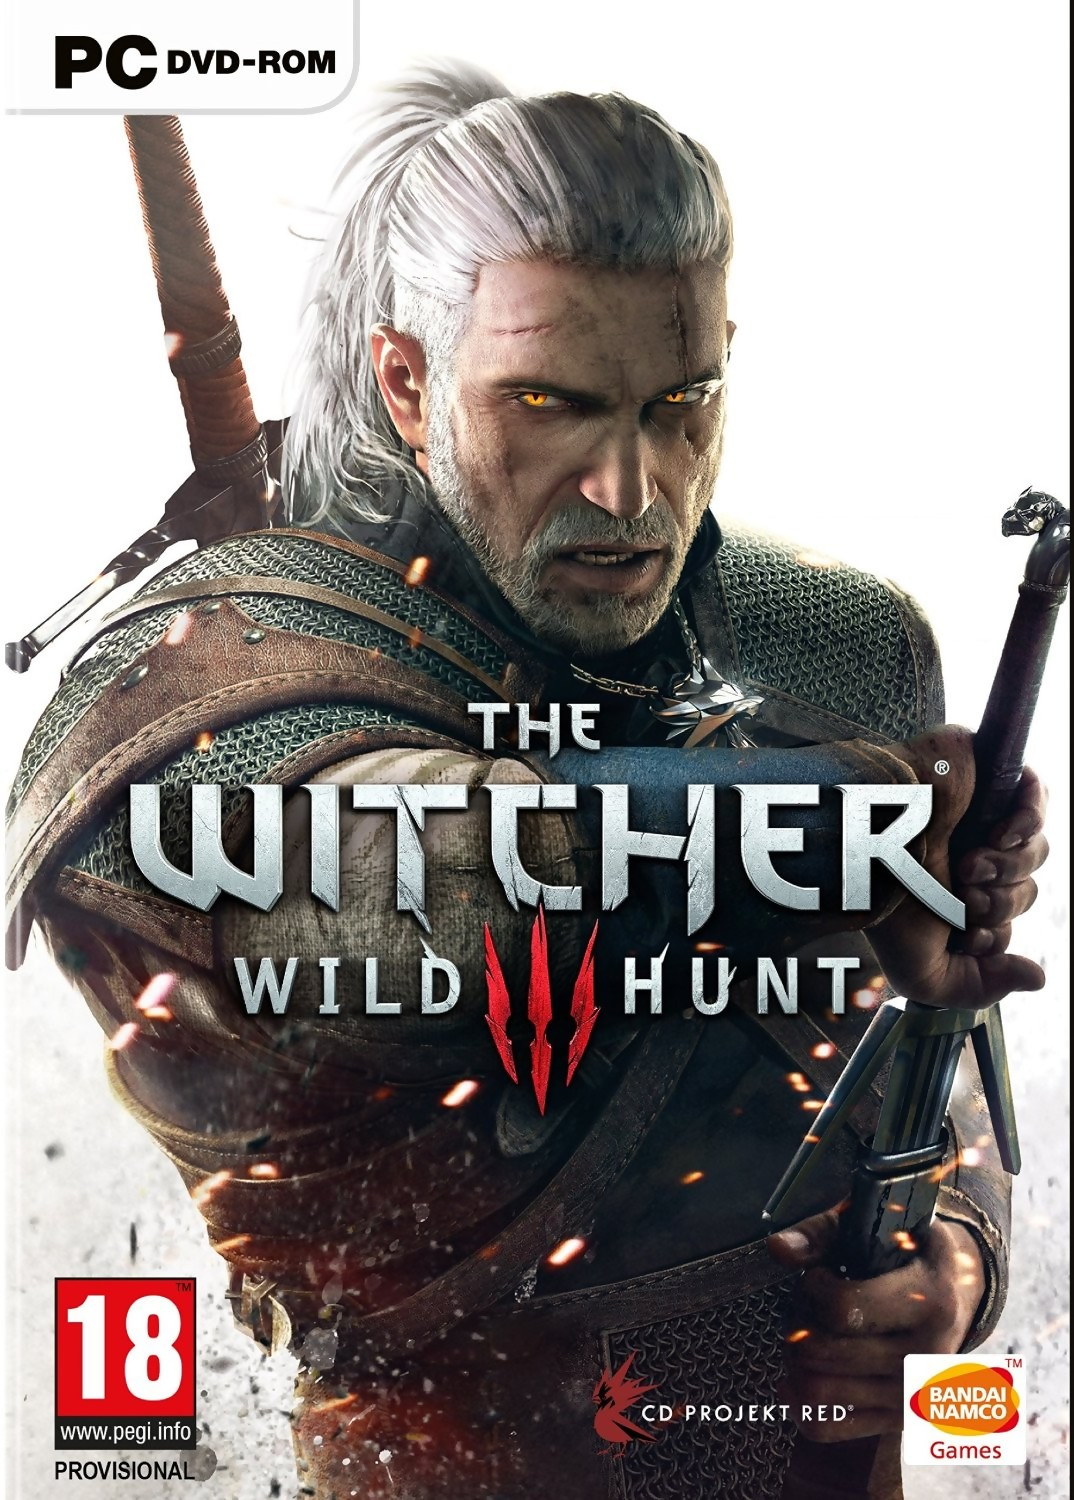 The Witcher 3: Wild Hunt torrent